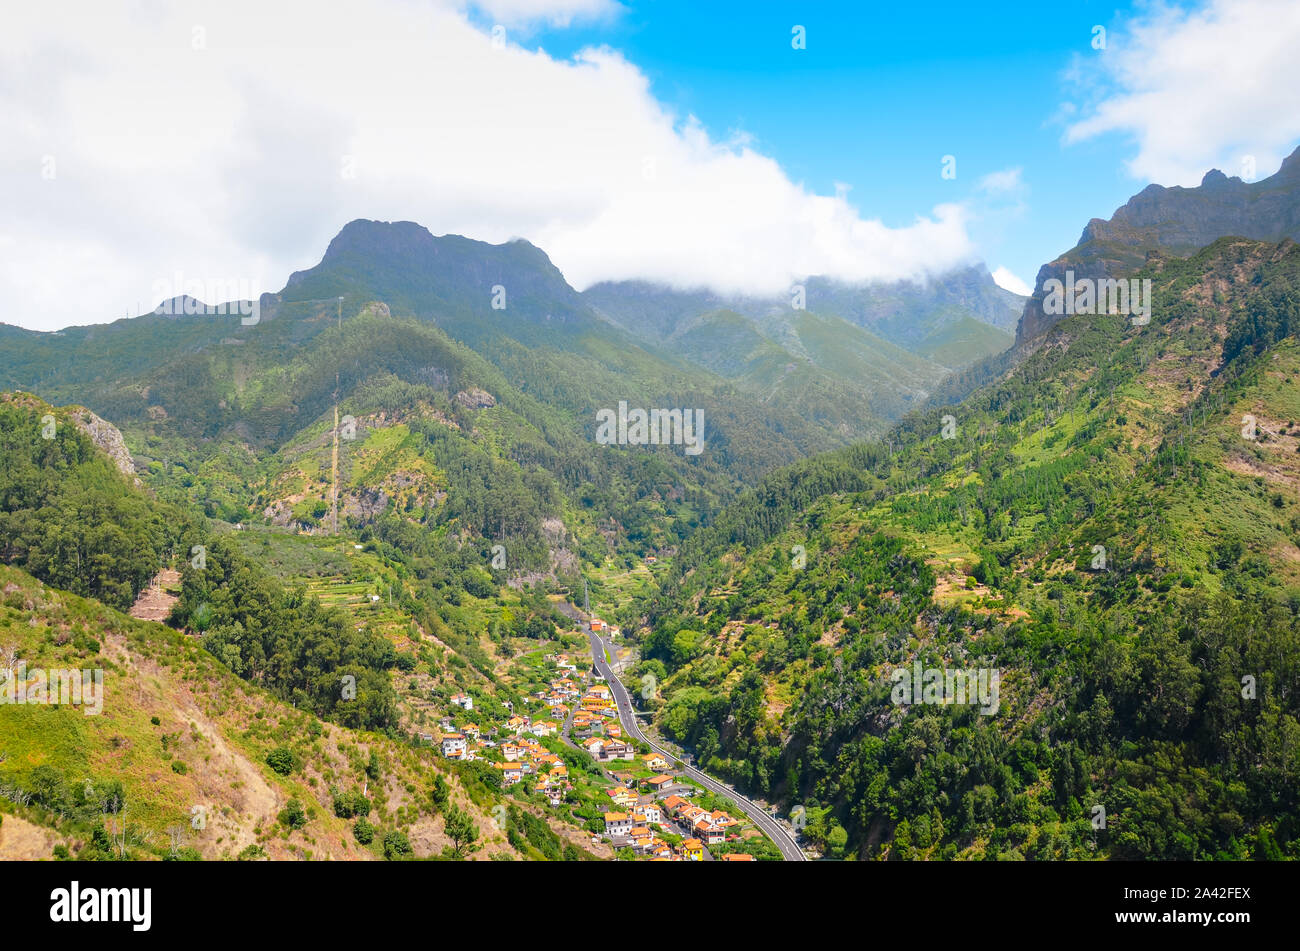 Stunning view of picturesque village Serra de Aqua in Madeira Island, Portugal. Small city in a valley surrounded by green mountains. Portuguese landscape. Amazing travel destinations. Stock Photo